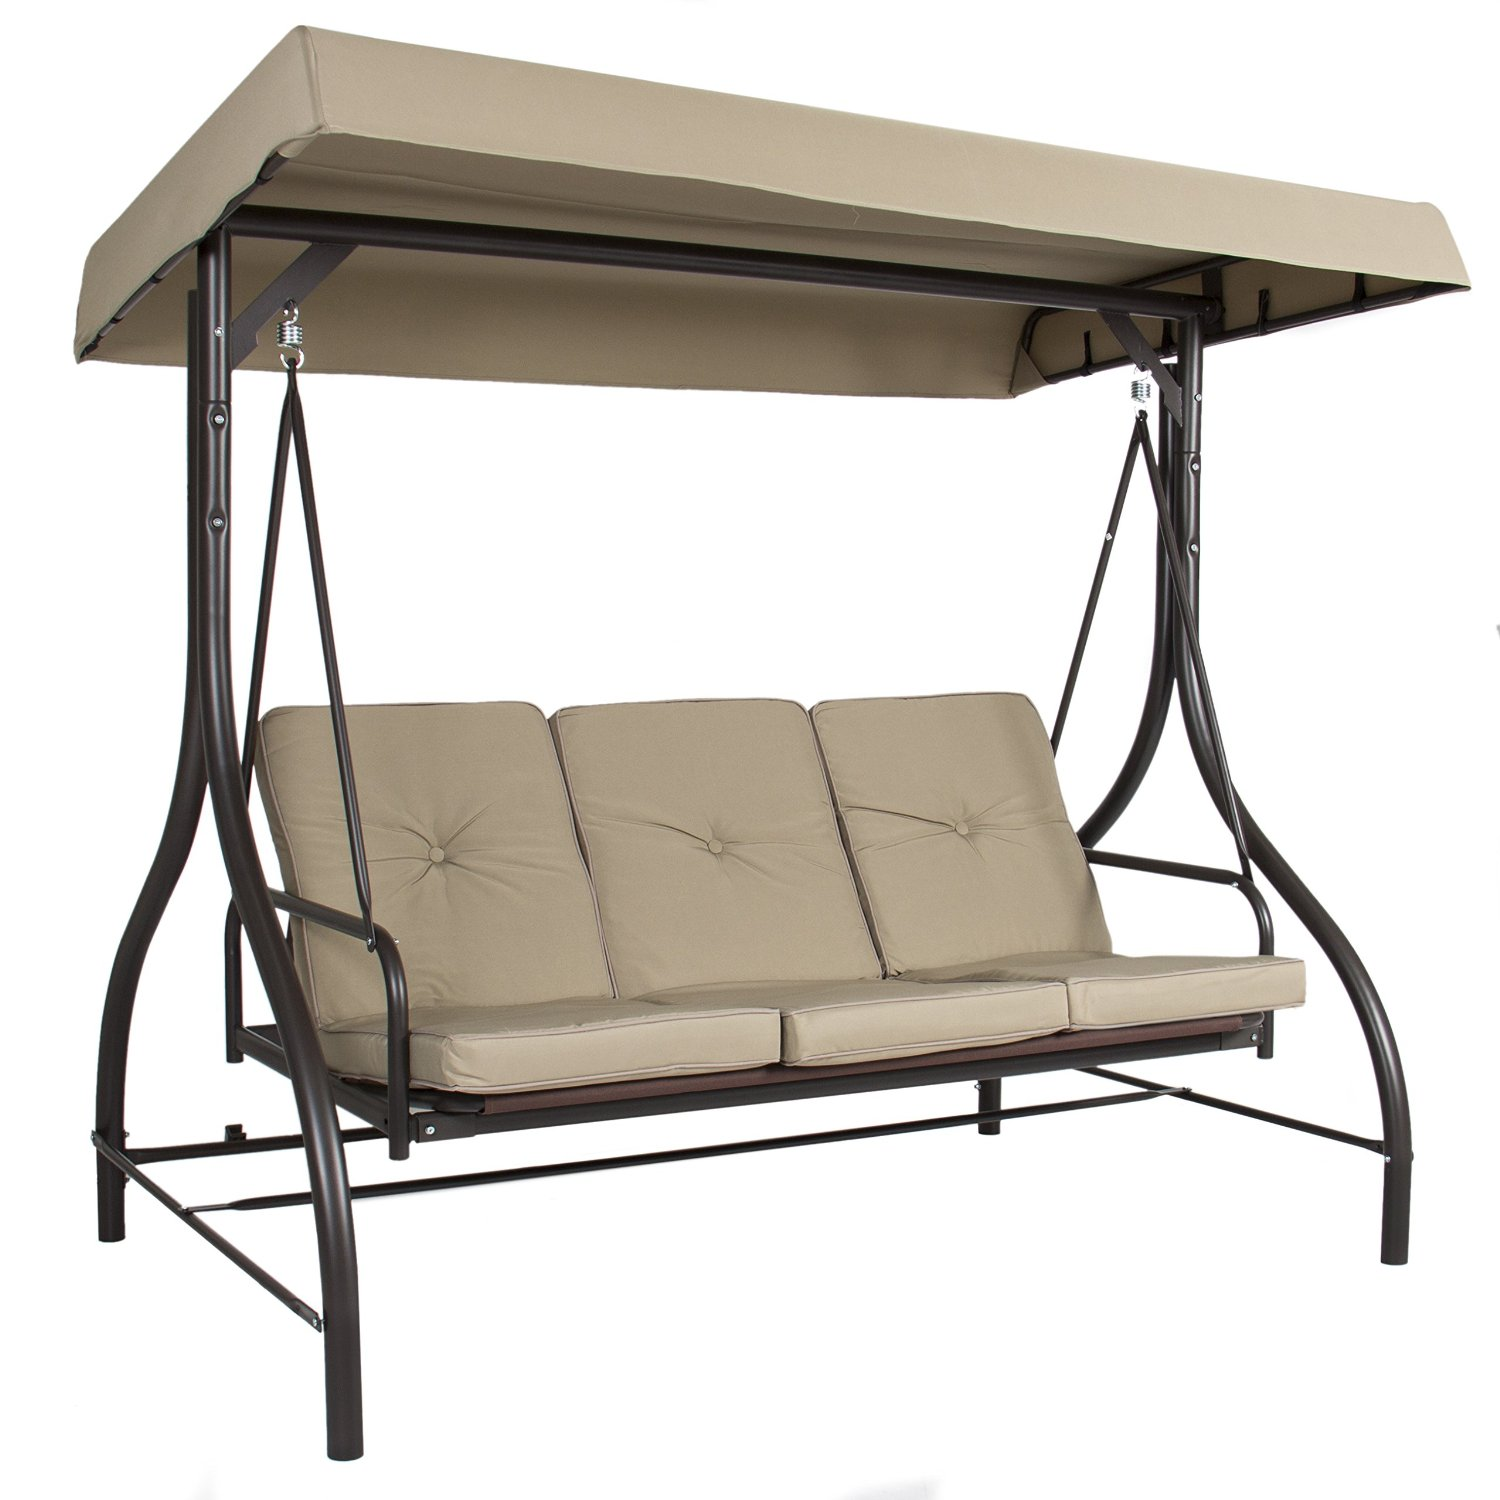 Person Patio Porch Swing Hammock Bench Canopy Loveseat Convertible Bed. Full resolution‎  portrait, nominally Width 1500 Height 1500 pixels, portrait with #7D6B4E.